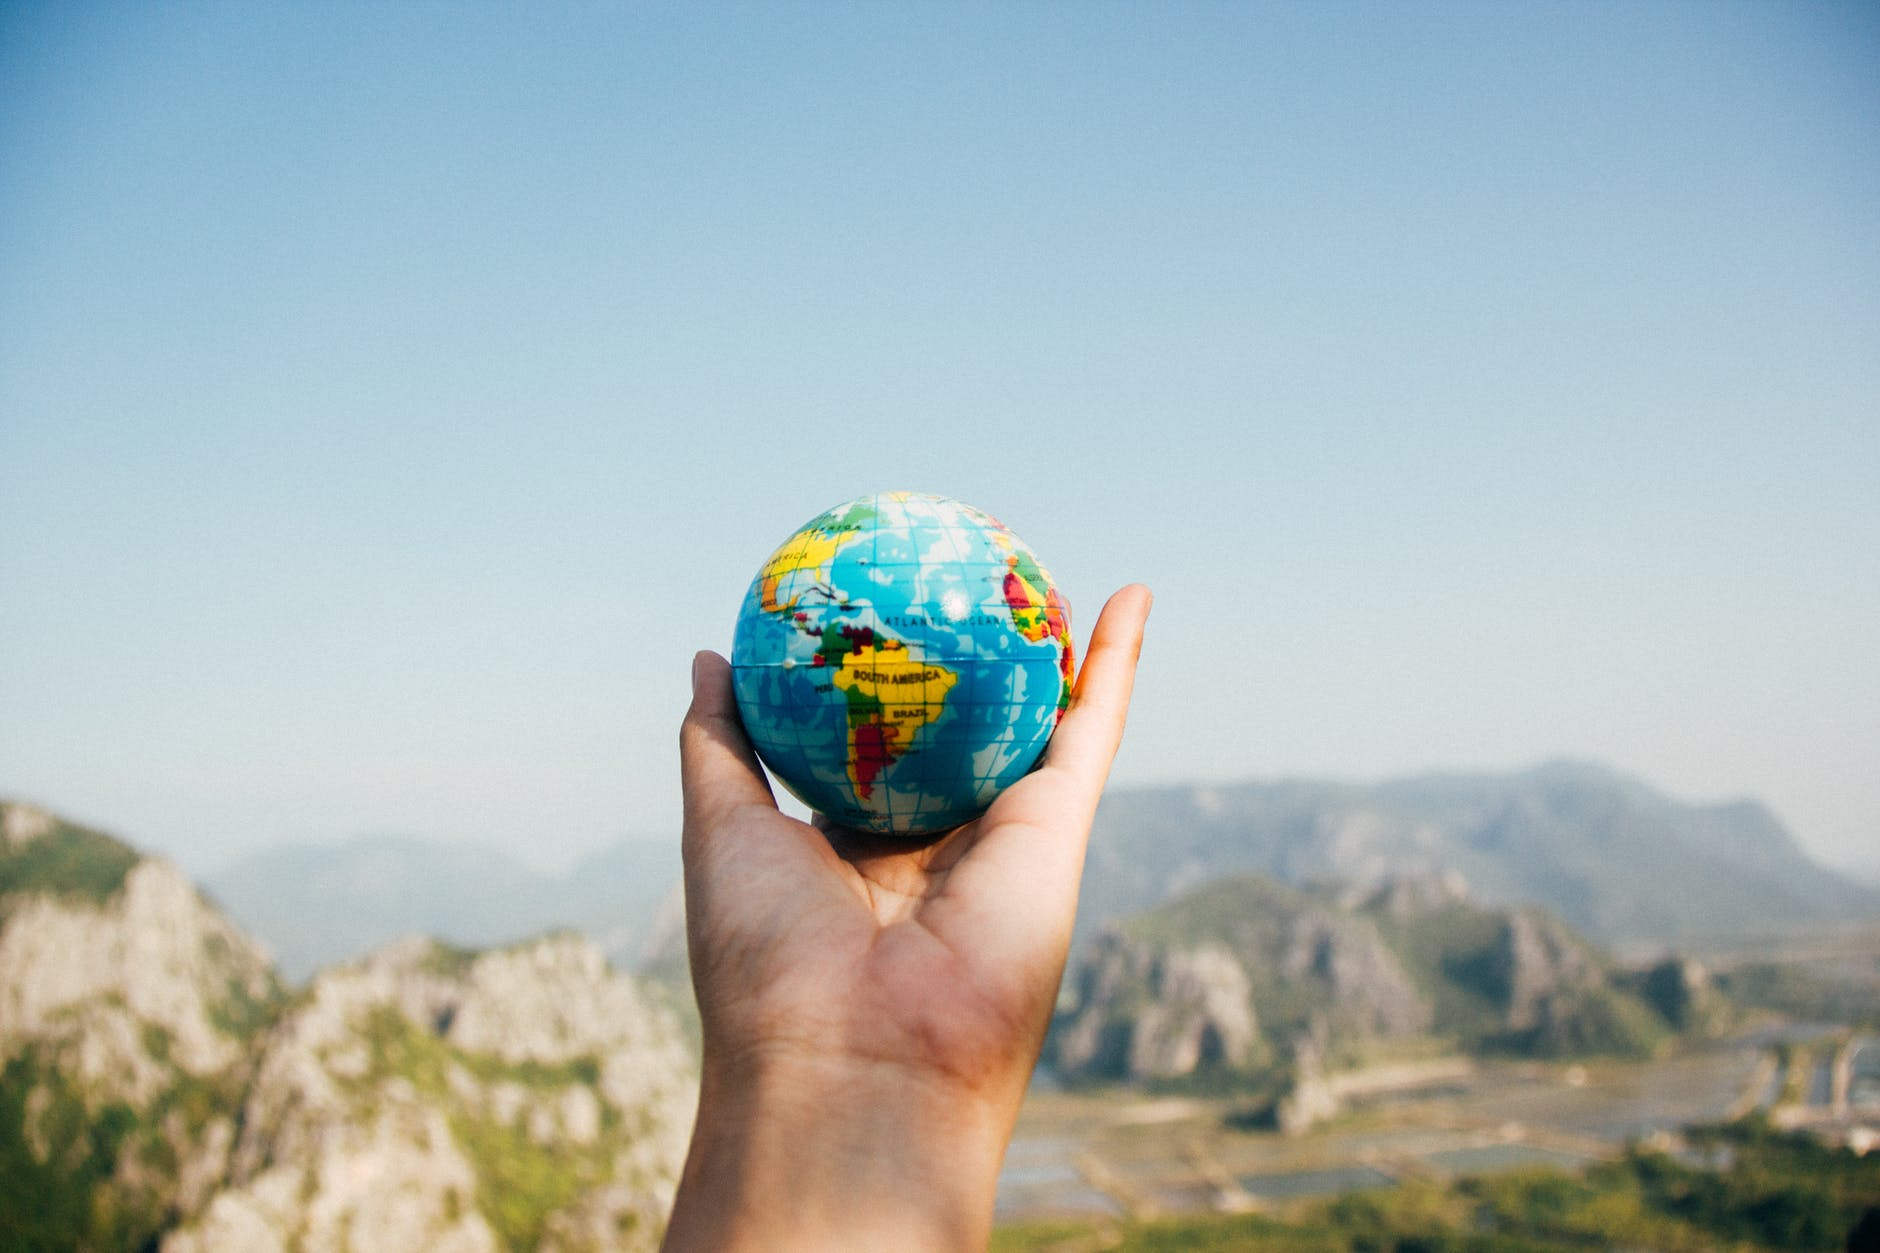 photo of a person holding a globe in their hand